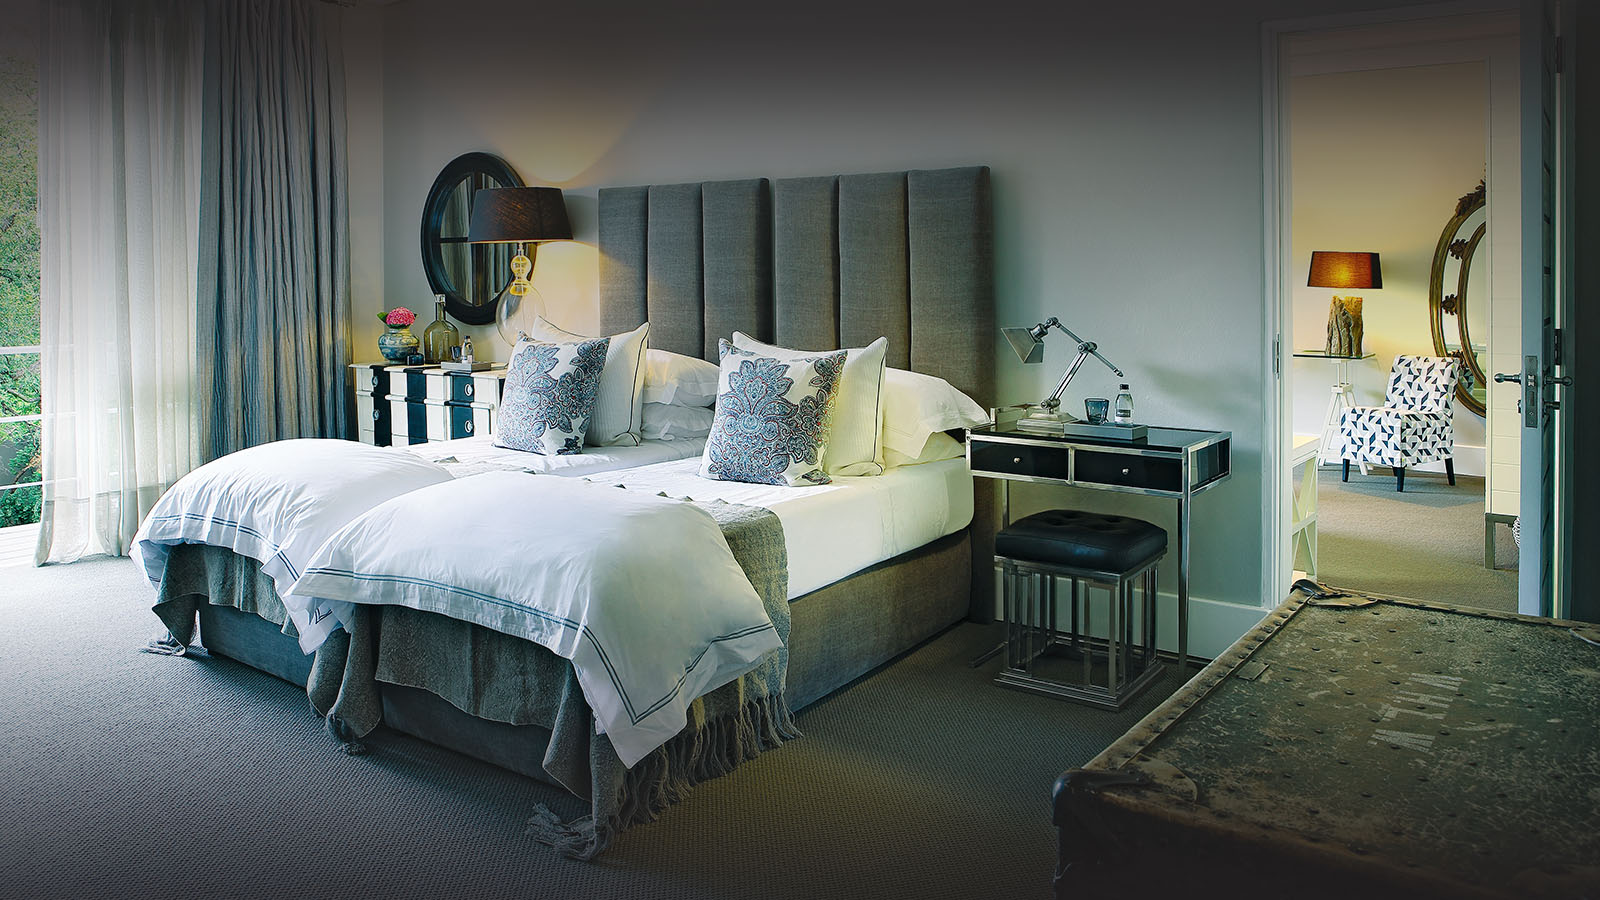 atholplace hotel-johannesburg-lodges-zambia-in-style-south-africa-stylish-modern-deluxe-suite